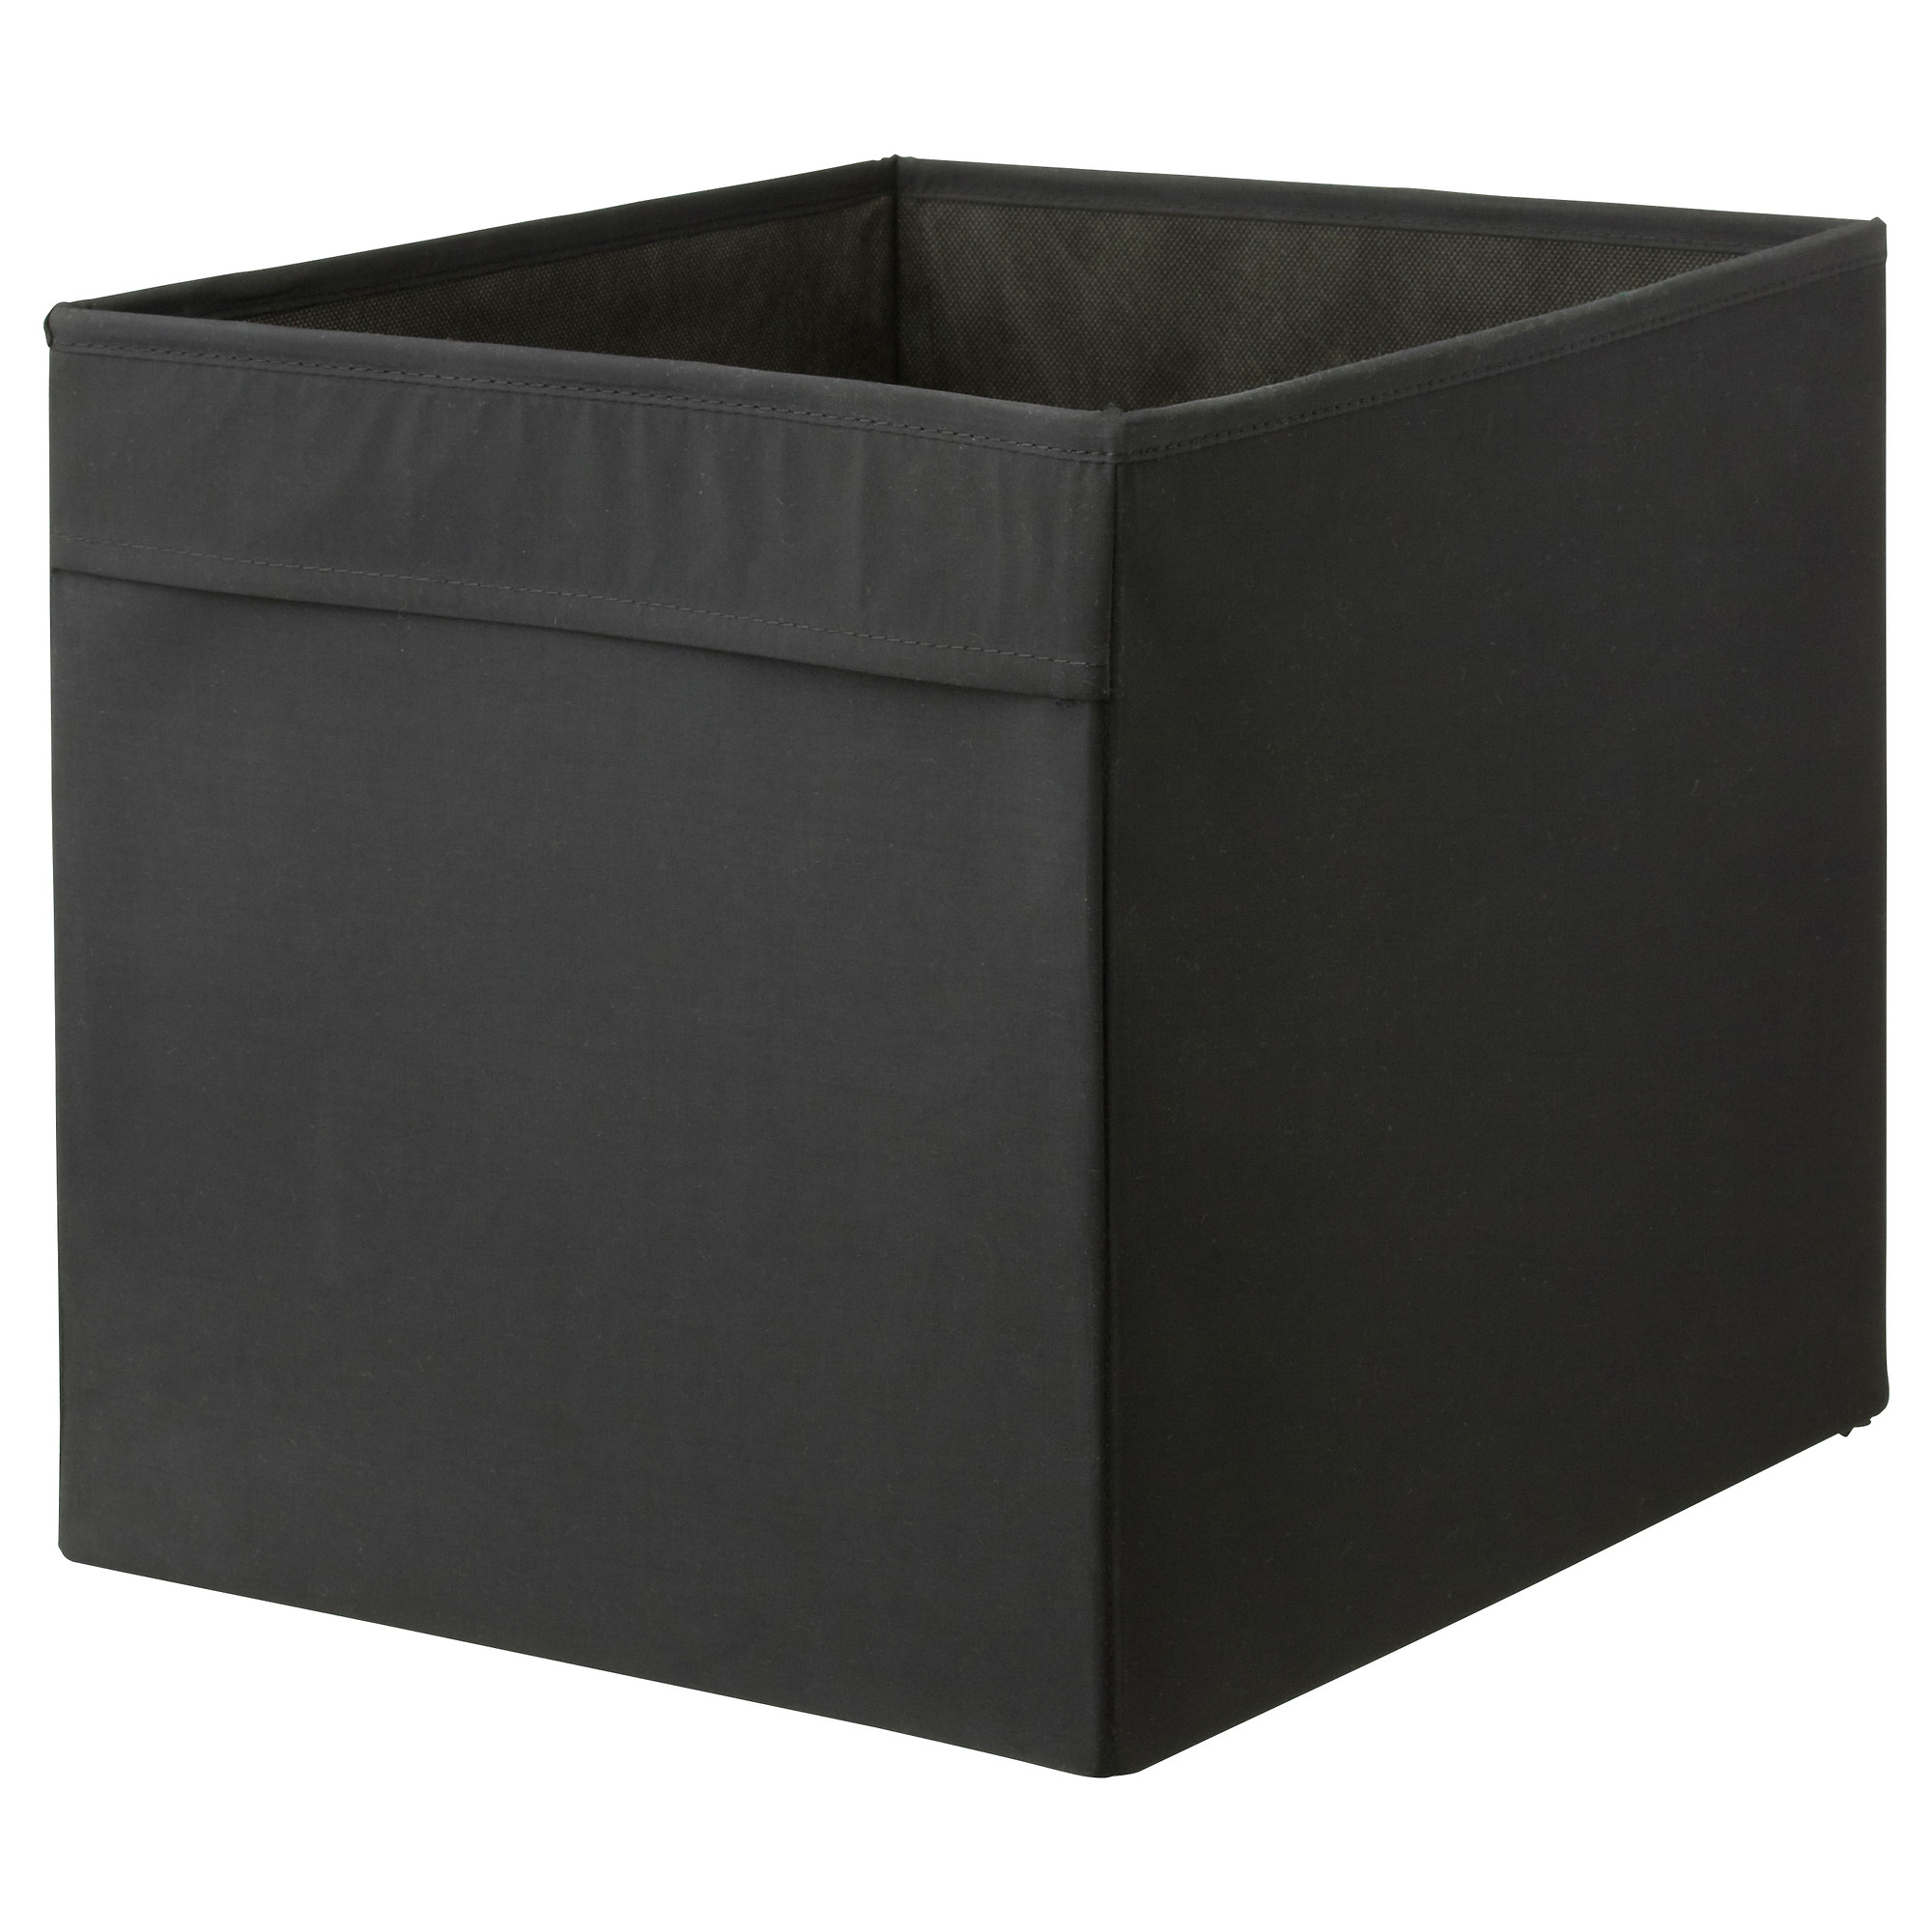 Ikea storage box